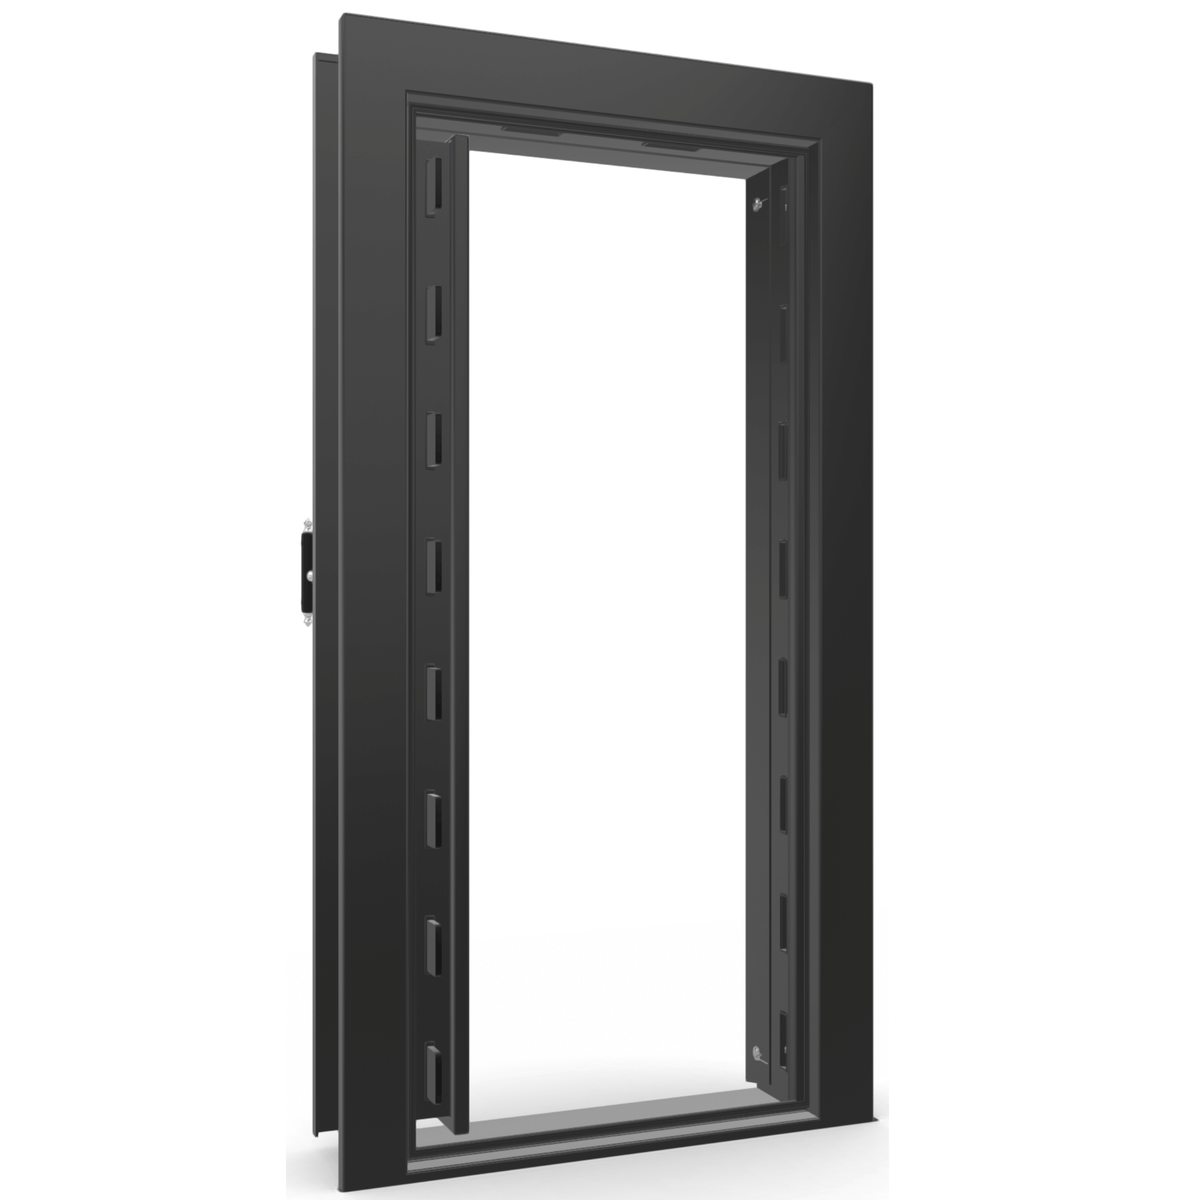 Vault Door Series | Out-Swing | Right Hinge | Black Gloss | Mechanical